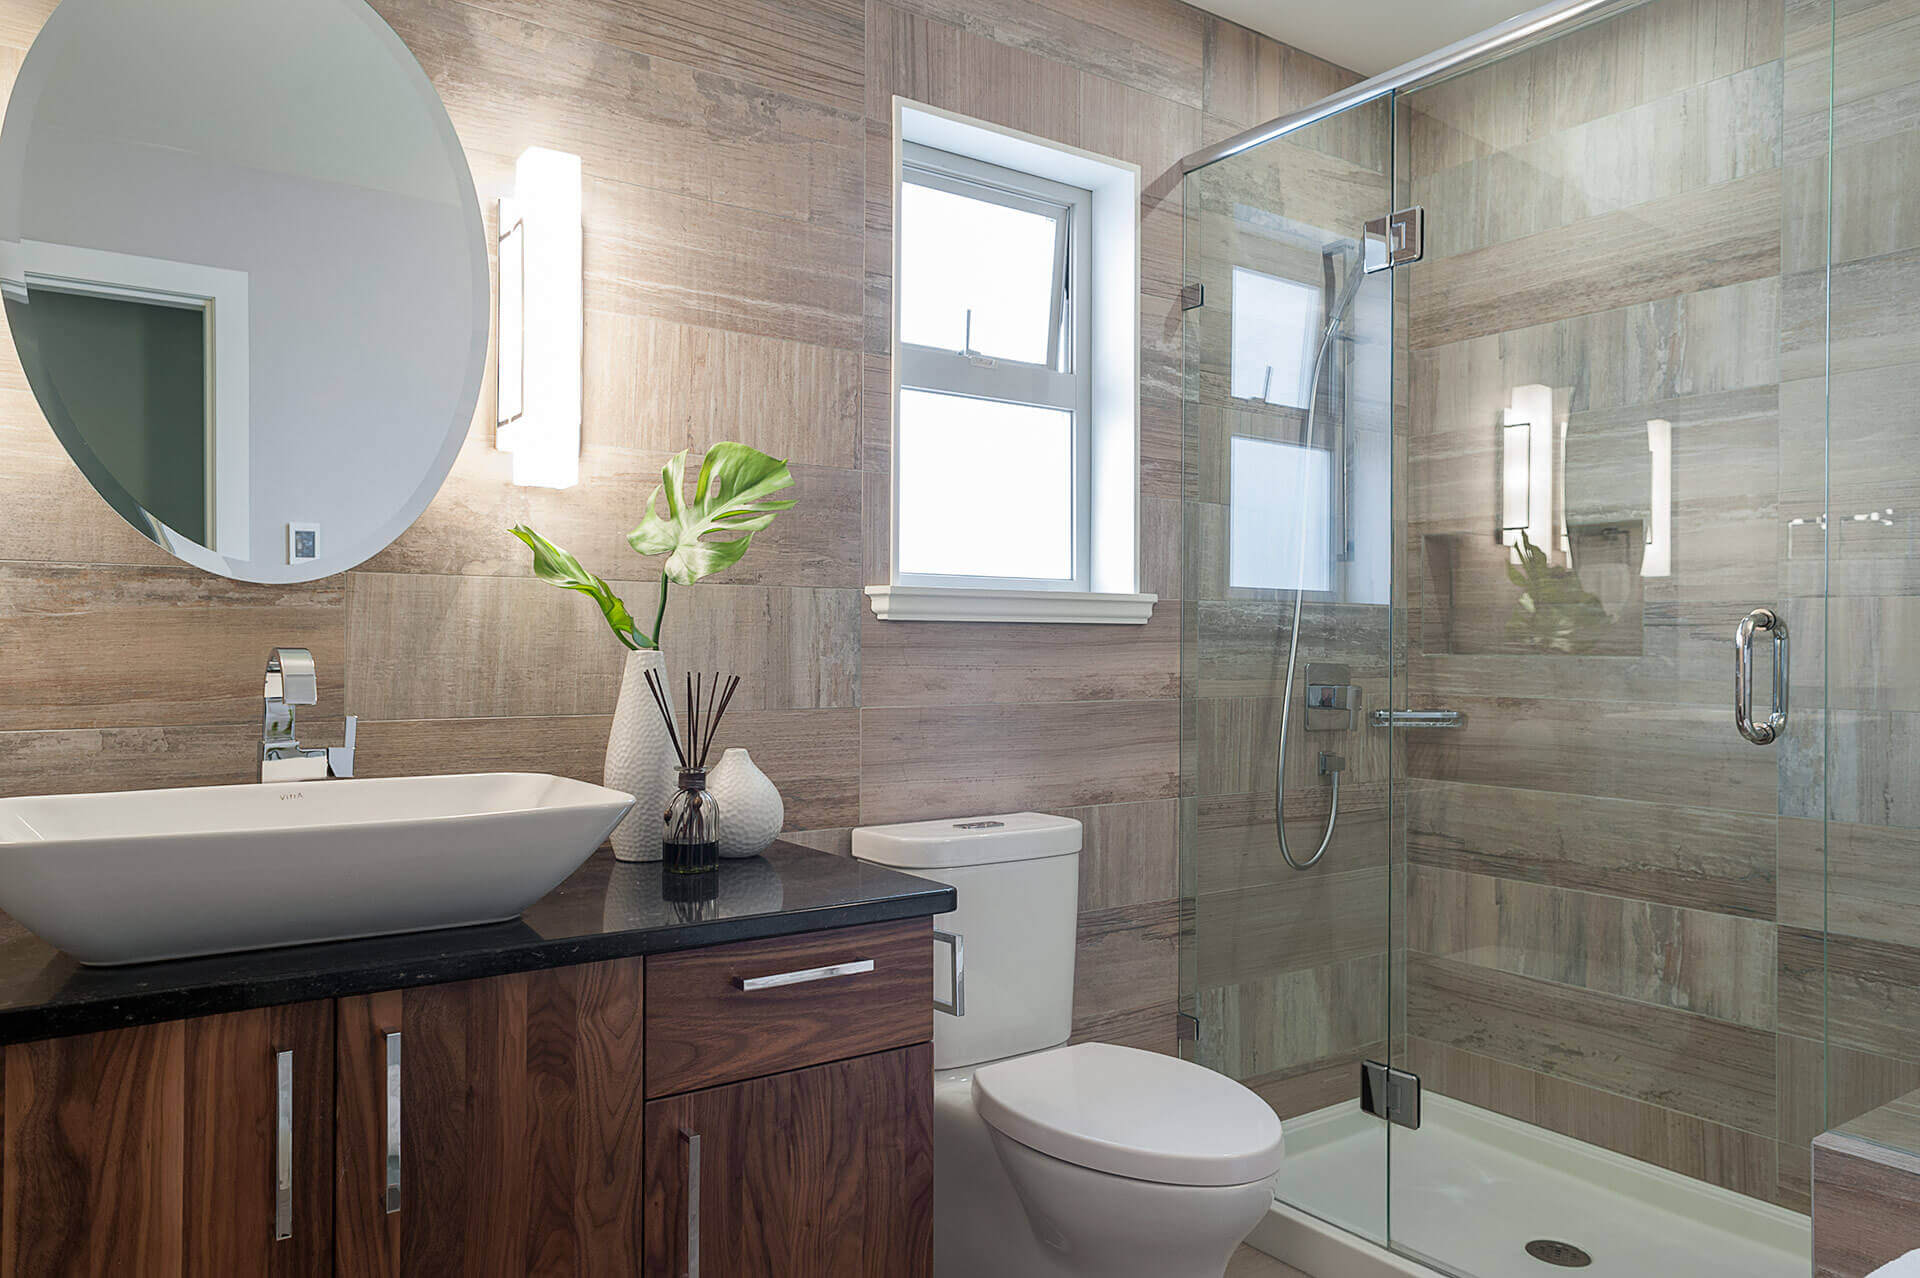 Small bathroom remodeling cost - Remodeling Cost Calculator on Small Bathroom Remodel  id=75347